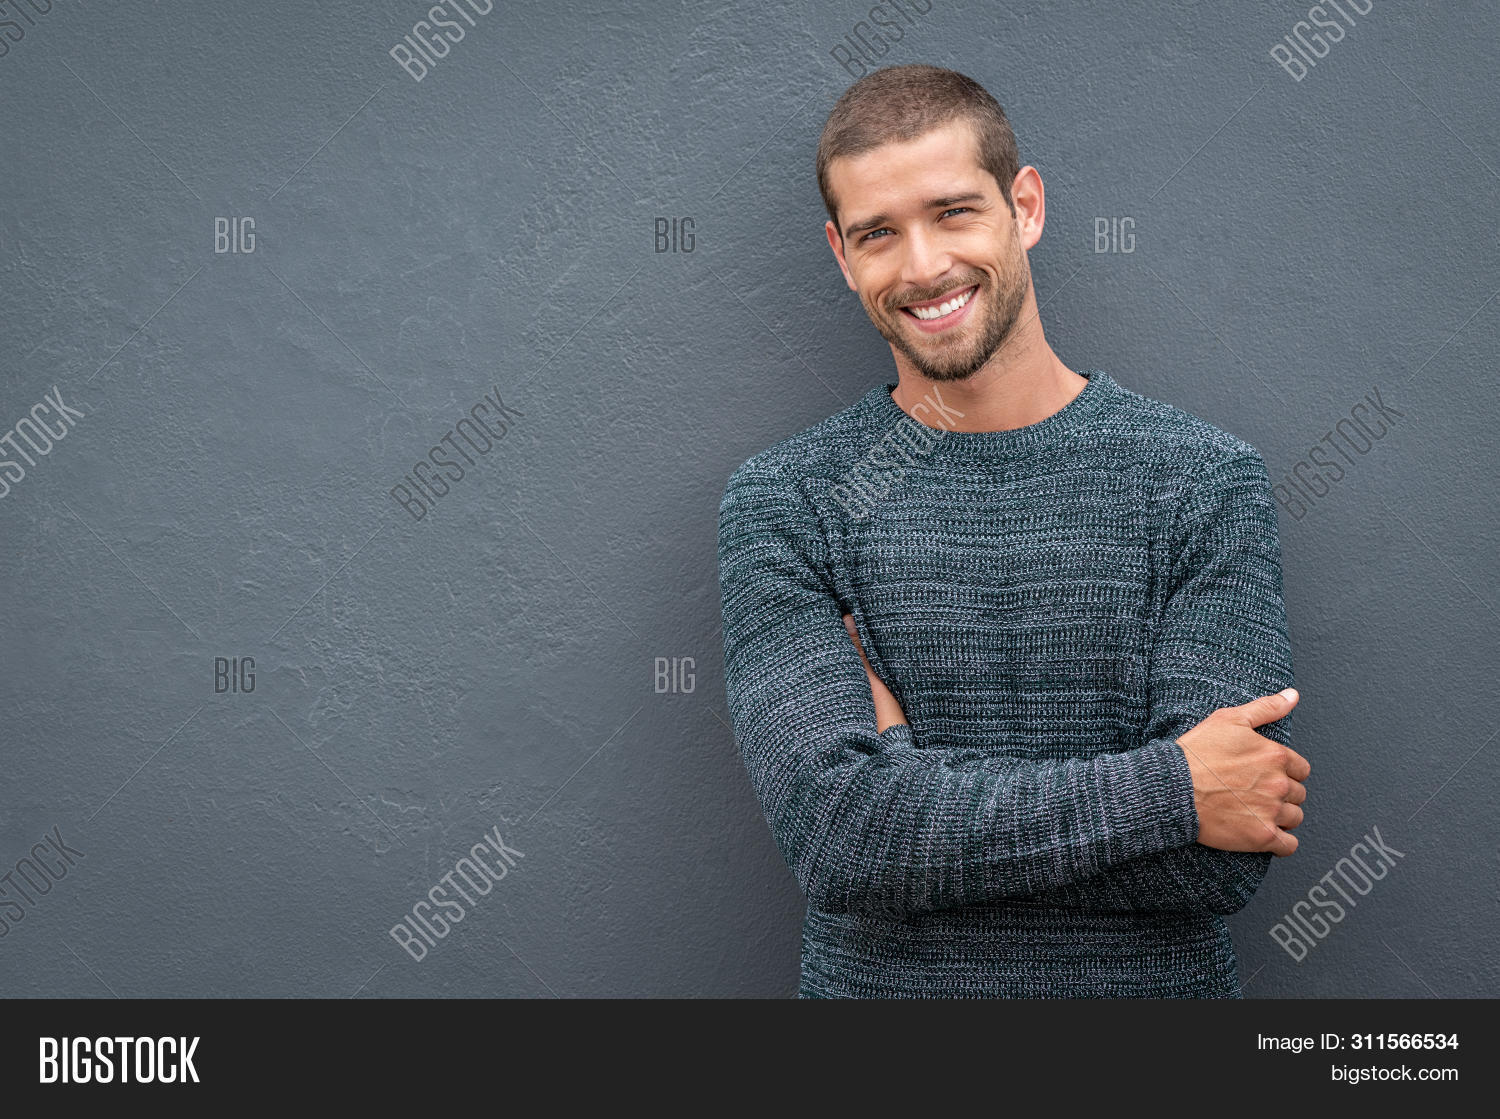 arm,autumn,background,casual,casual man,cheerful,confident,cool,cool guy,copy space,crossed,crossed arms,expression,fashion,fashionable,friendly,gray wall,grey,grey background,guy,handsome,handsome man,happiness,happy,isolated,leaning,looking,looking at camera,people,portrait,positive,proud,reliability,satisfied,smile,standing,studio,stylish,success,successful,sweater,sweater man,toothy smile,wall,winter,winter clothes,young,young man